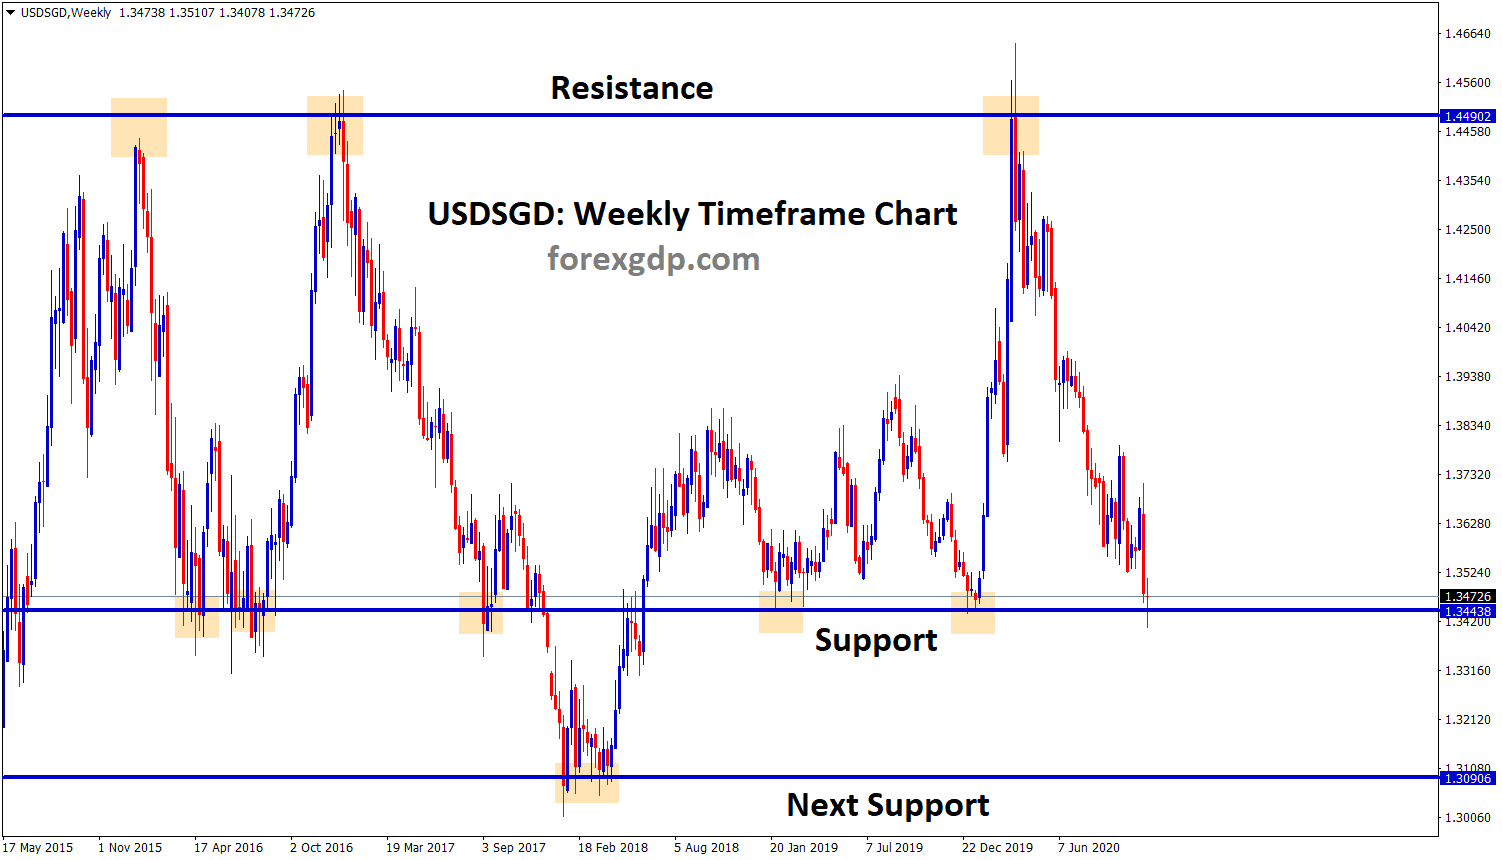 USDSGDWeekly ranging market at the support now